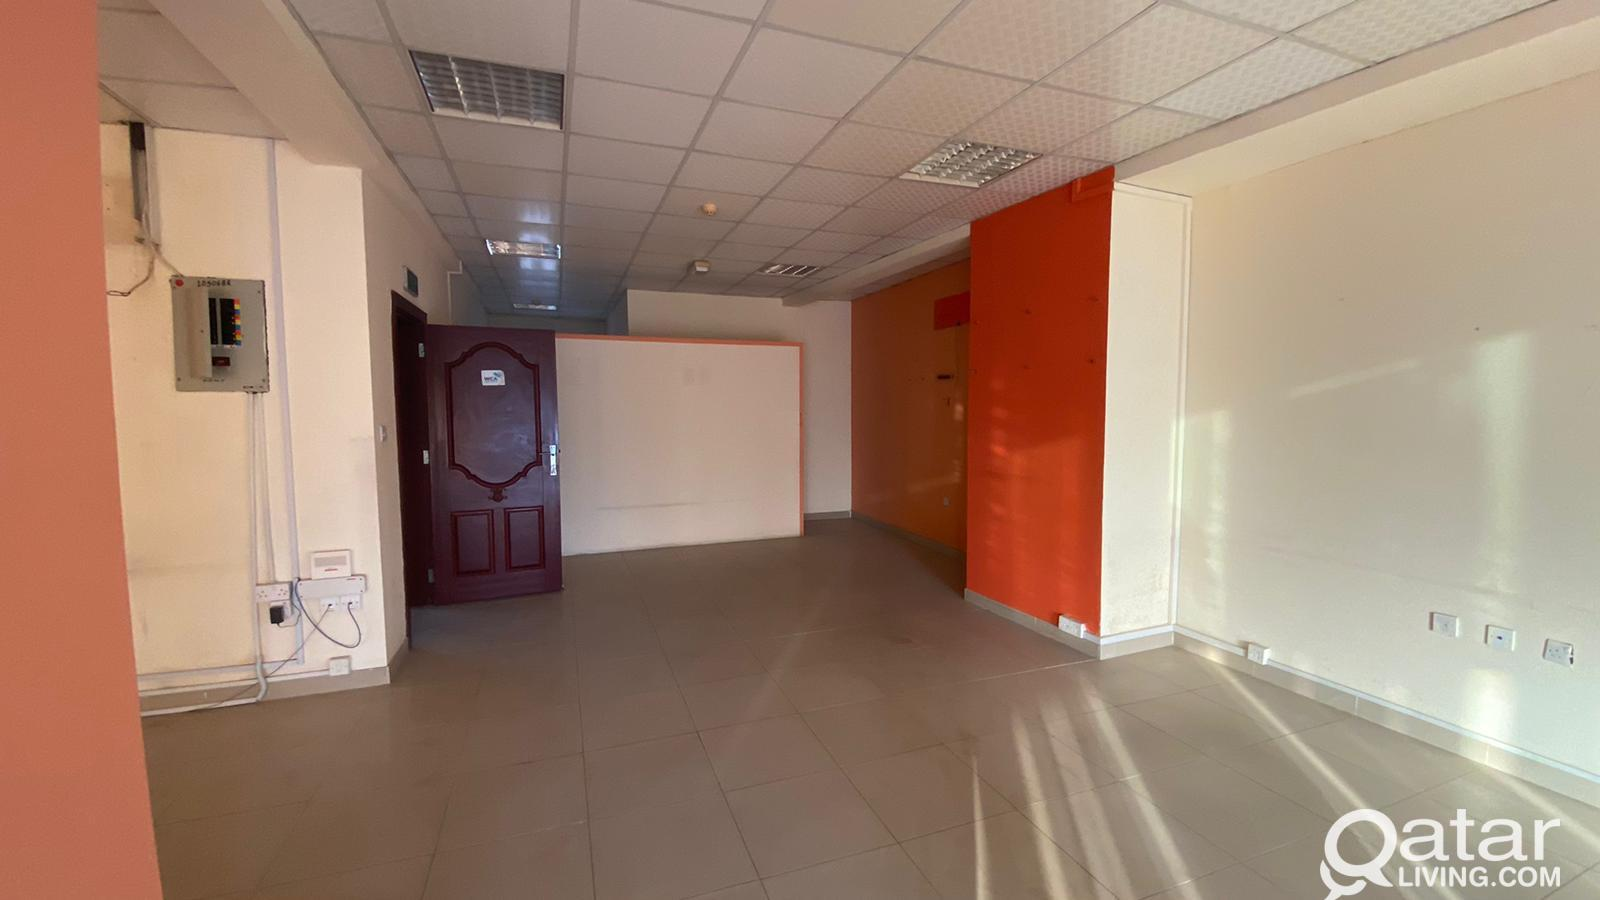 1 MONTH FREE -  BIG OFFICE  AT PRIMIE LOCATION OF